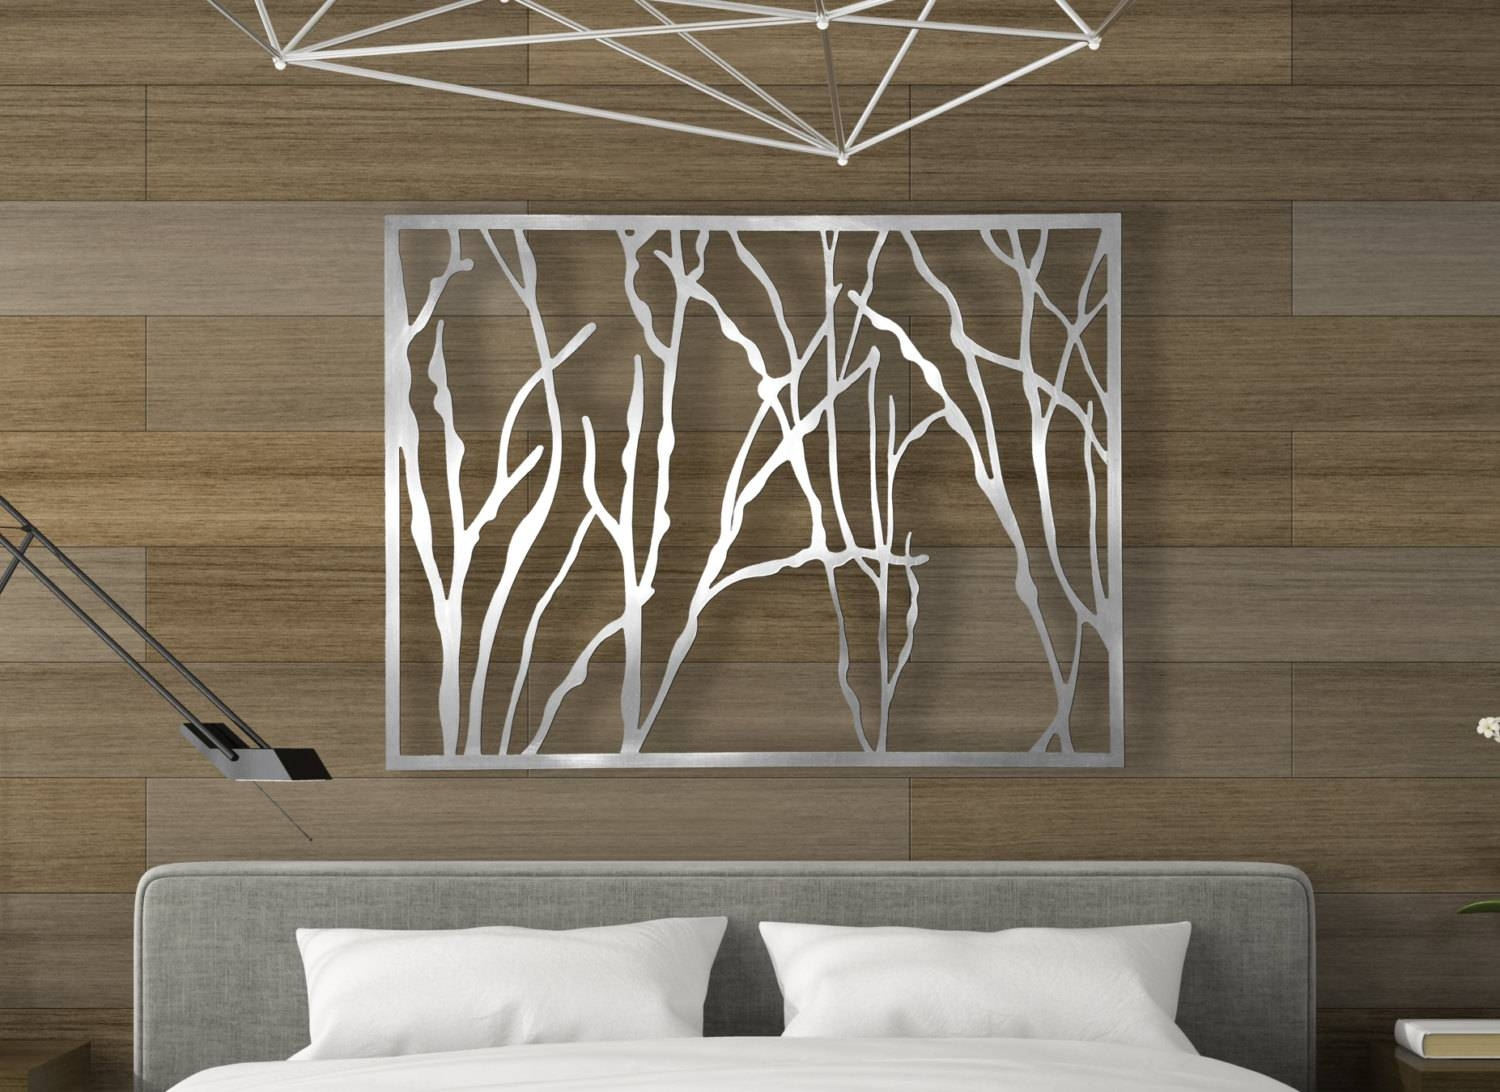 Laser Cut Wall Art Elegant As Canvas Wall Art On Wall Art Canvas Pertaining To Most Up To Date 3D Wall Art Canvas (View 15 of 20)